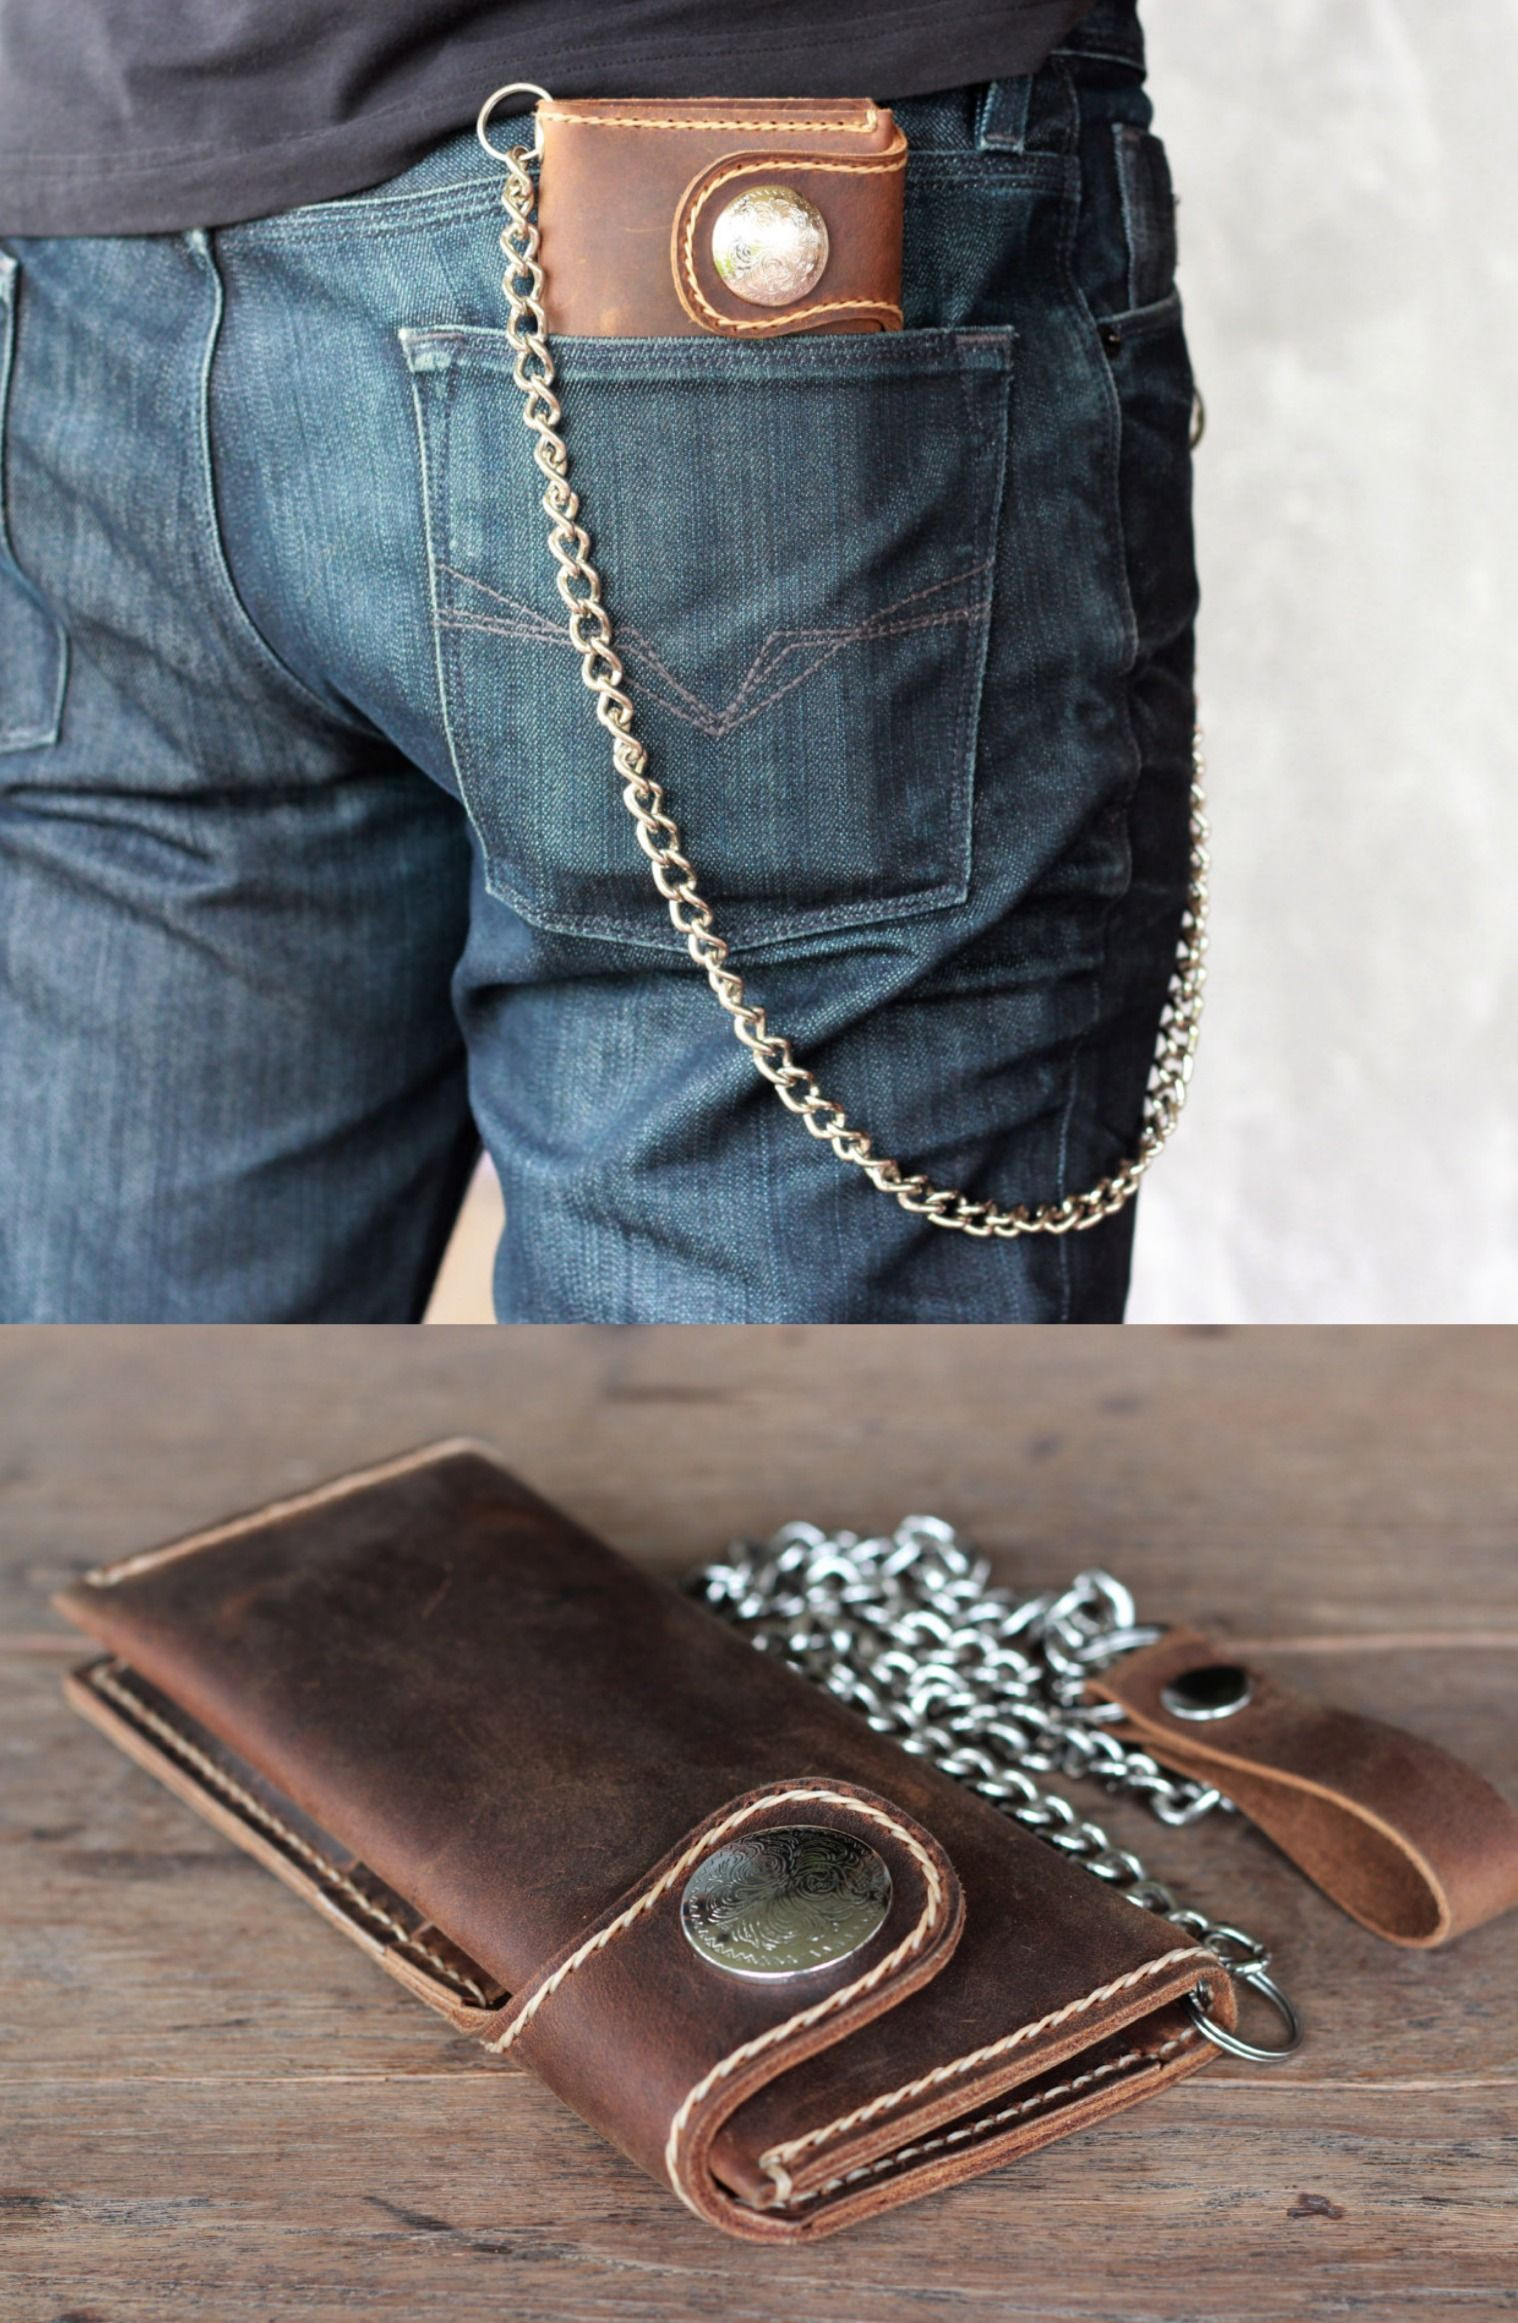 d4e599ed7f19 This chain wallet is off the hook! Hand made Leather Biker Wallet with a  fashion style. The perfect gift to yourself, or for someone for Christmas.